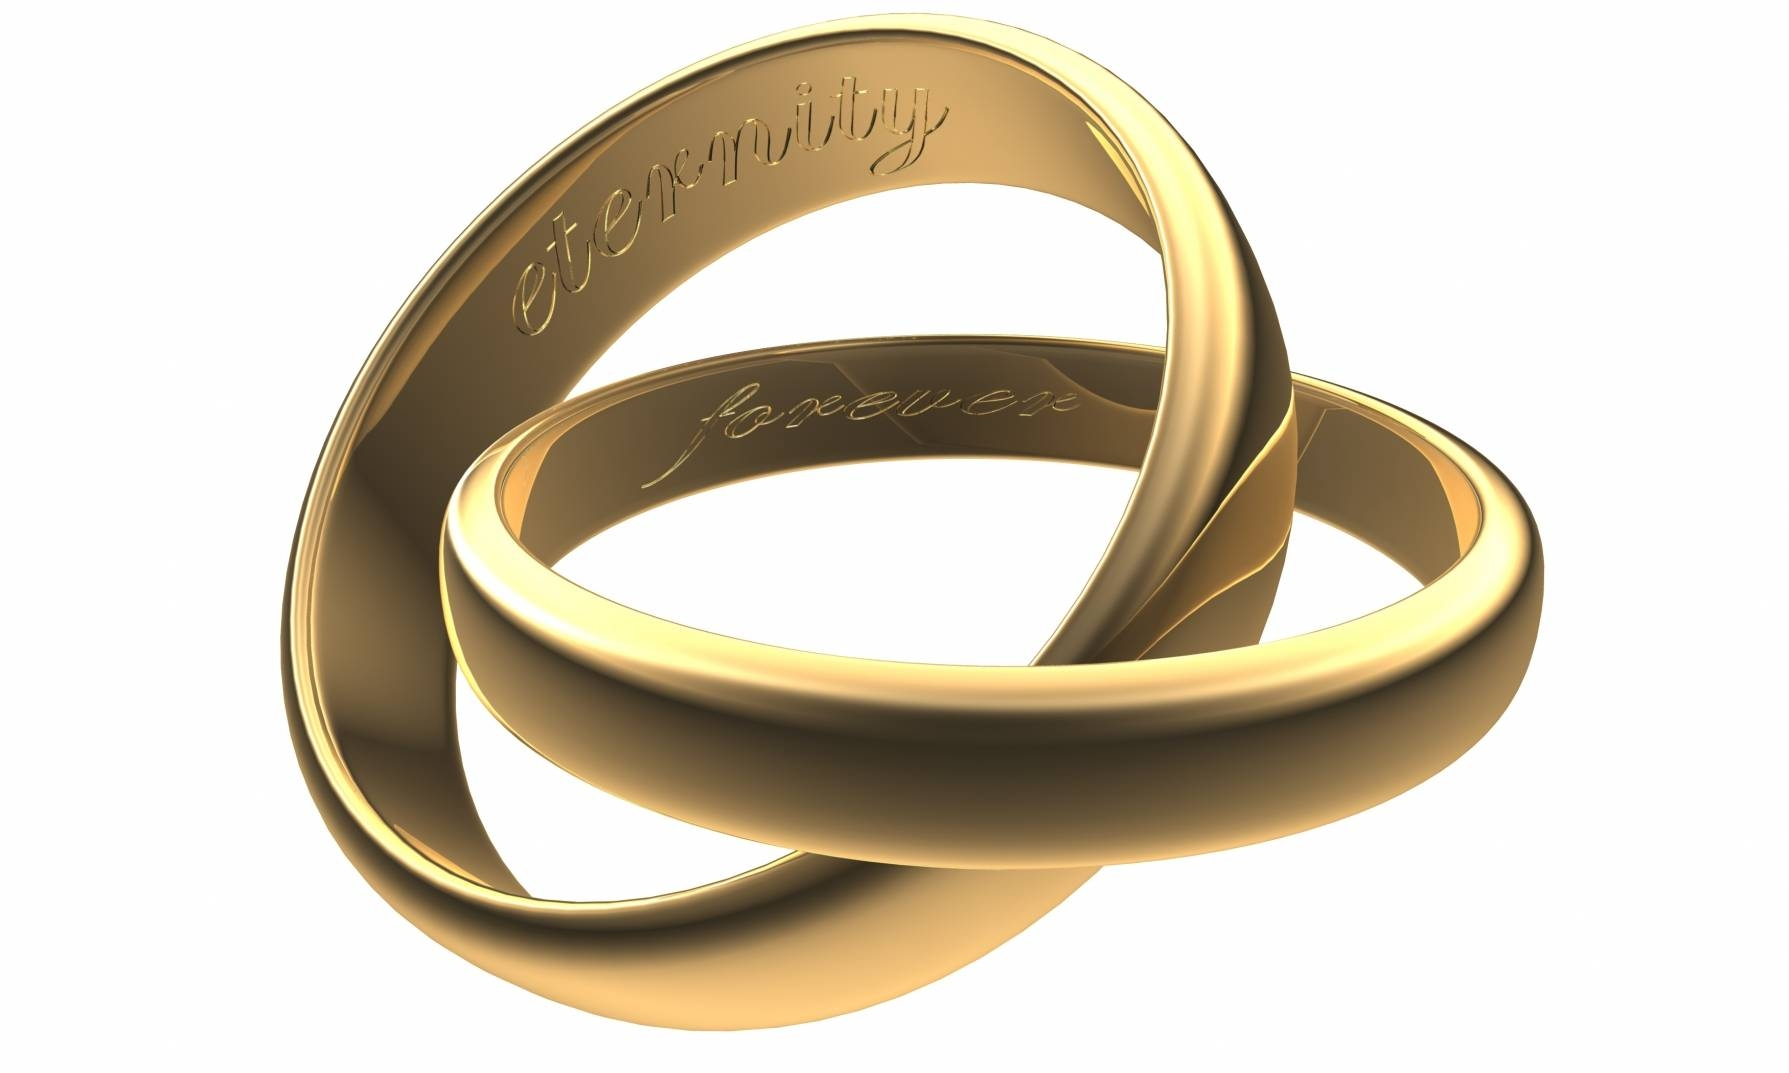 Engraved Wedding Bands | Wedding Band Engraving Inside Engrave Wedding Bands (View 6 of 15)